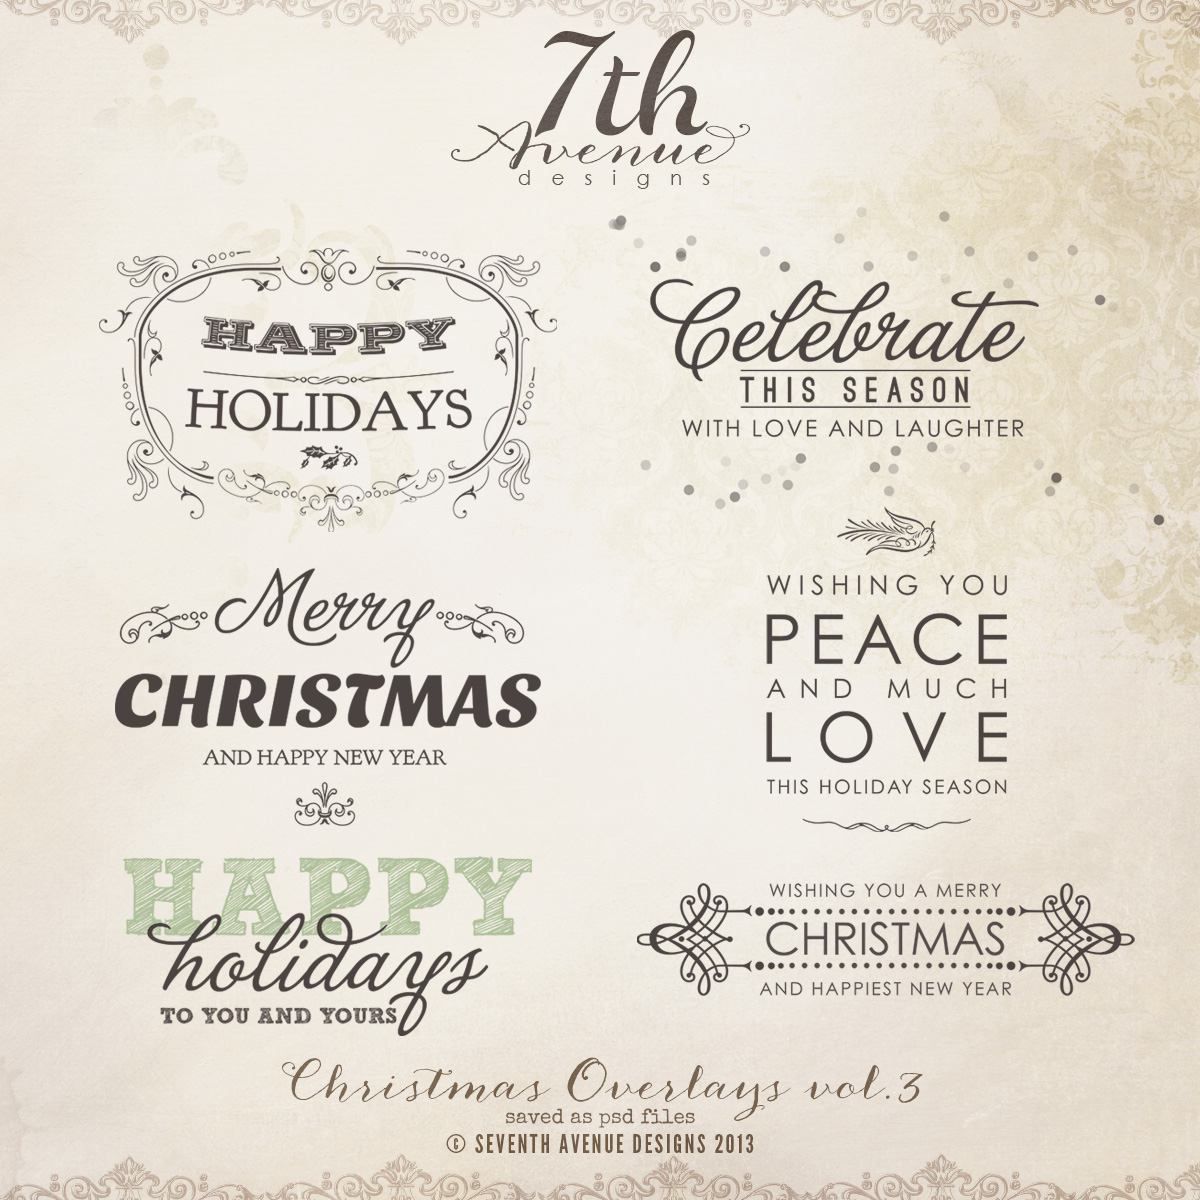 Christmas Overlays vol.3